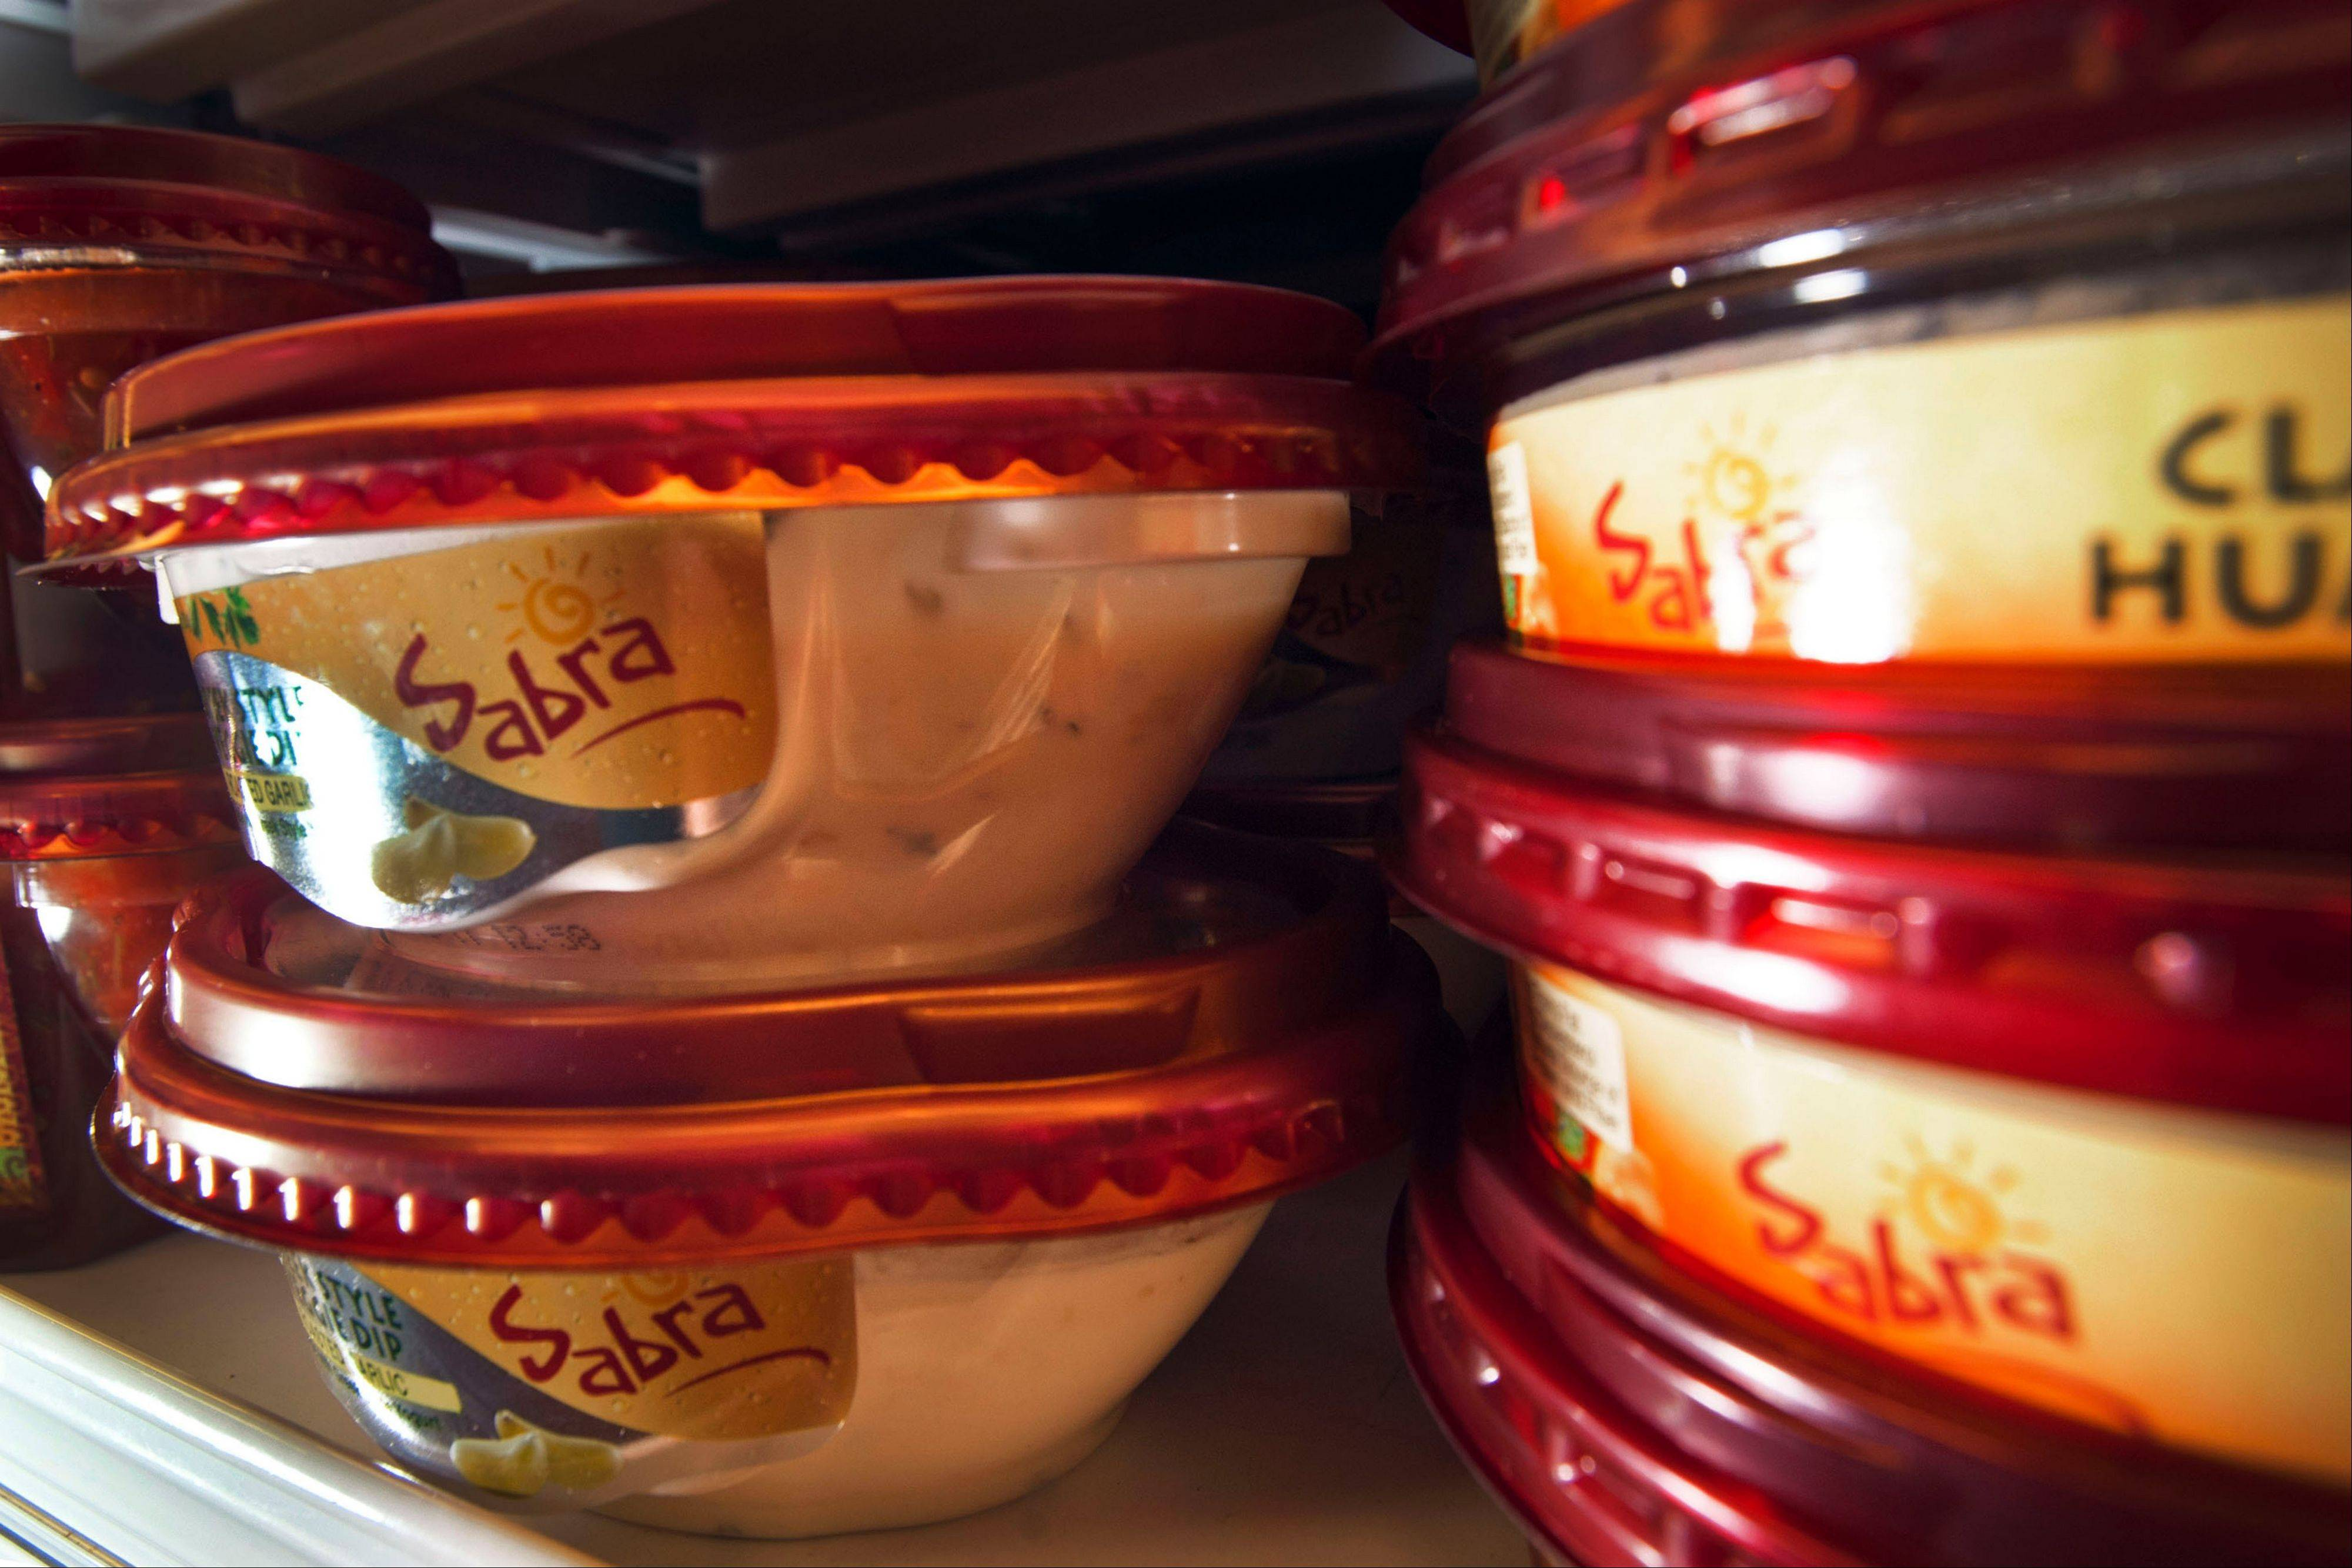 Sabra soon will kick off as the National Football League's official dips sponsor.